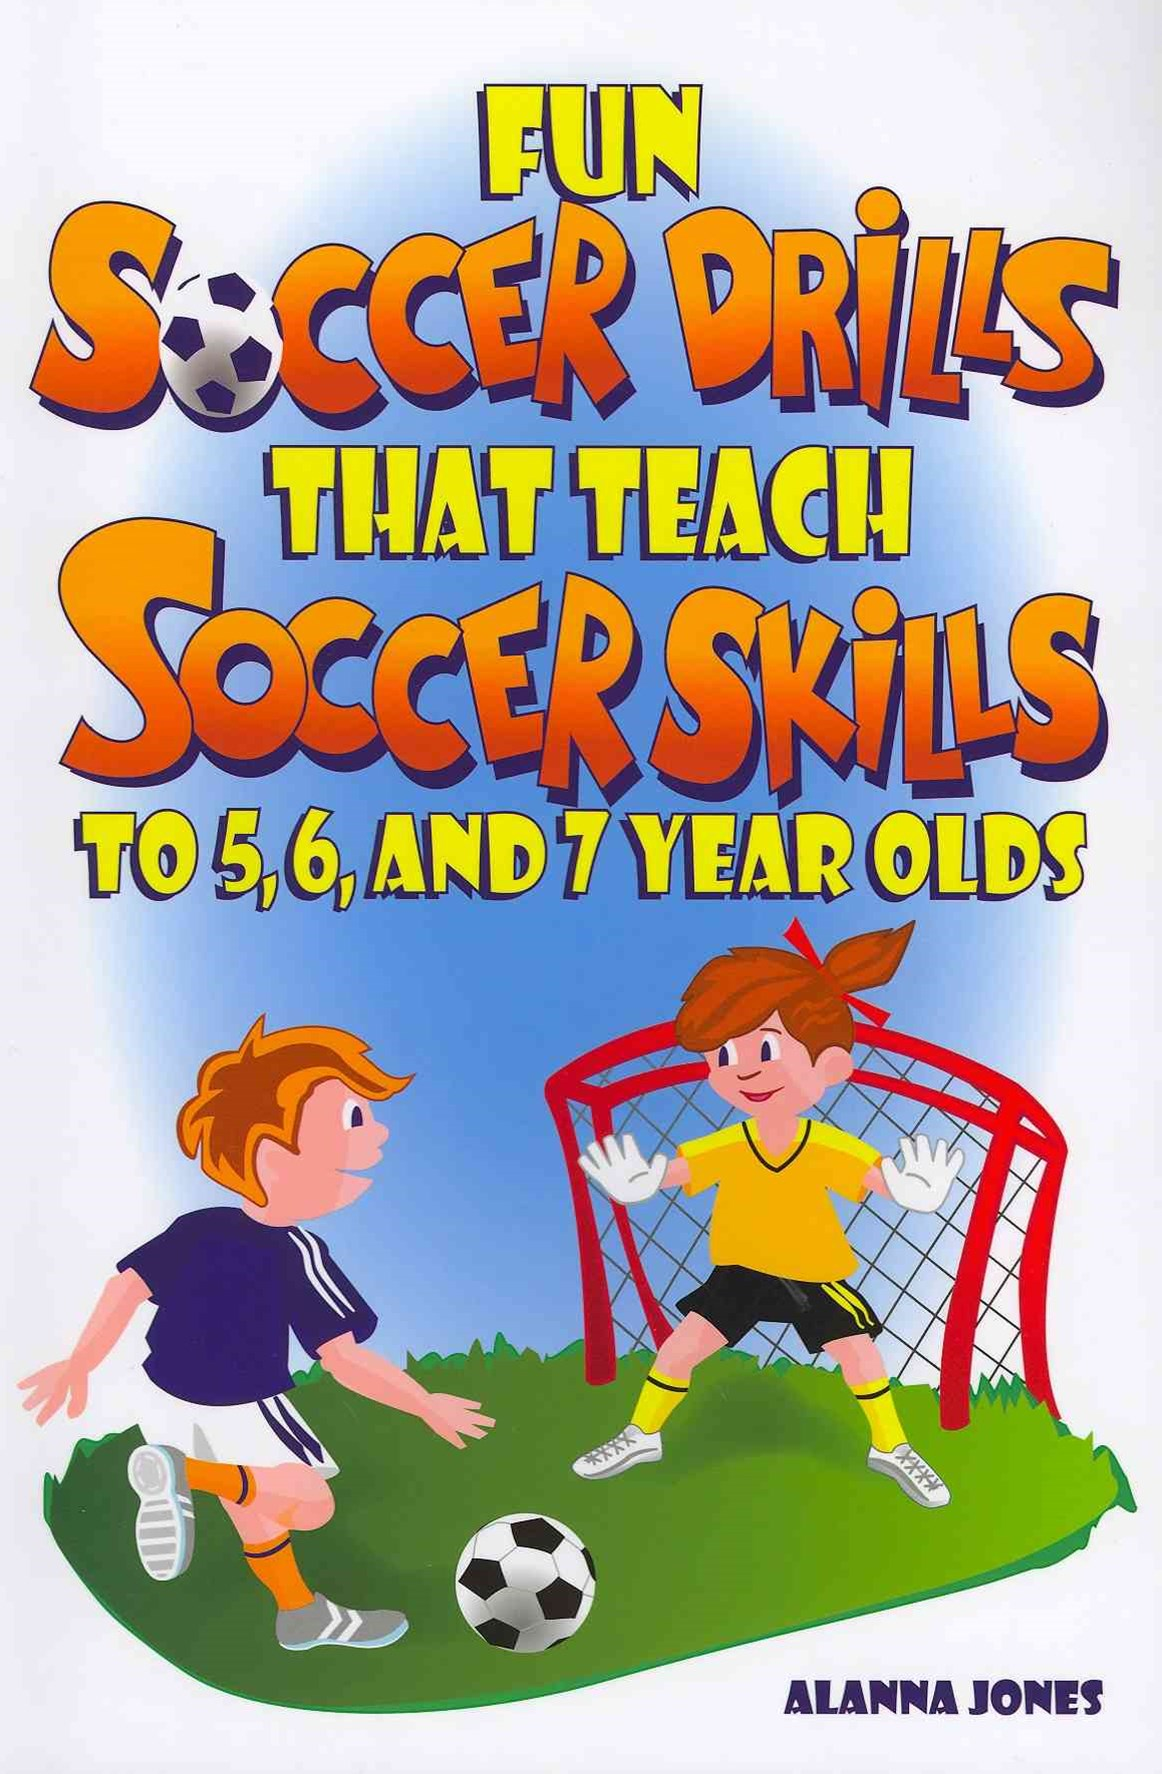 Fun Soccer Drills That Teach Soccer Skills to 5, 6, and 7 Year Olds